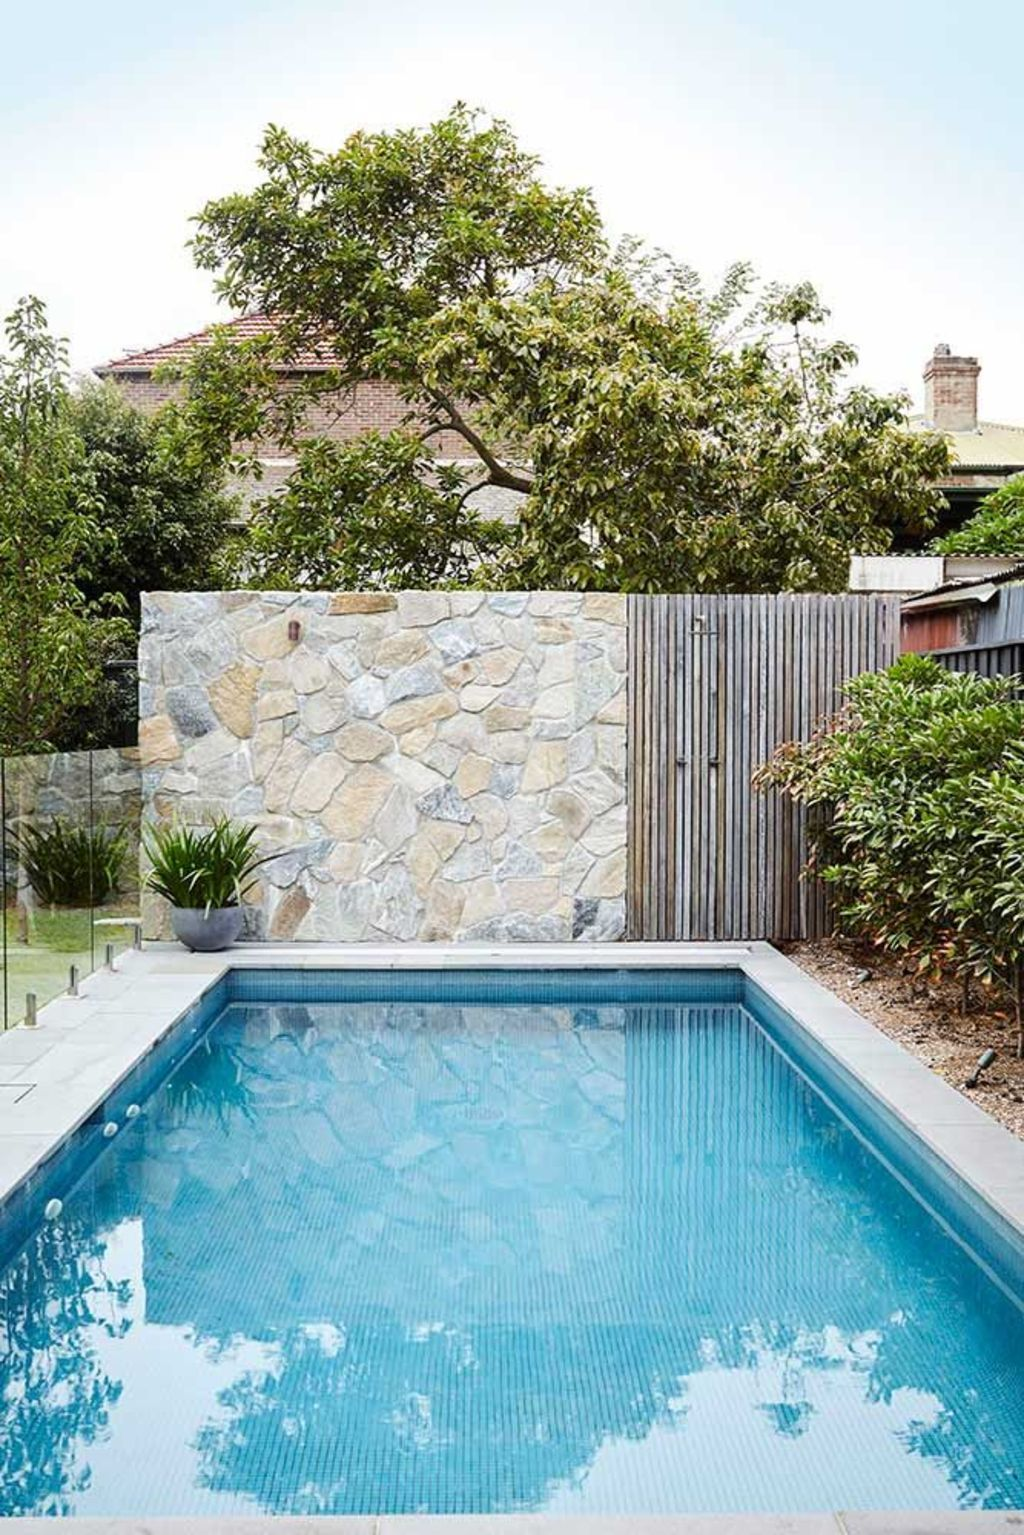 Inground Tiny Swimming Pool In A Small Backyard That Pick The Best Shape Part 10 Shairoom Com Small Pool Design Backyard Pool Backyard